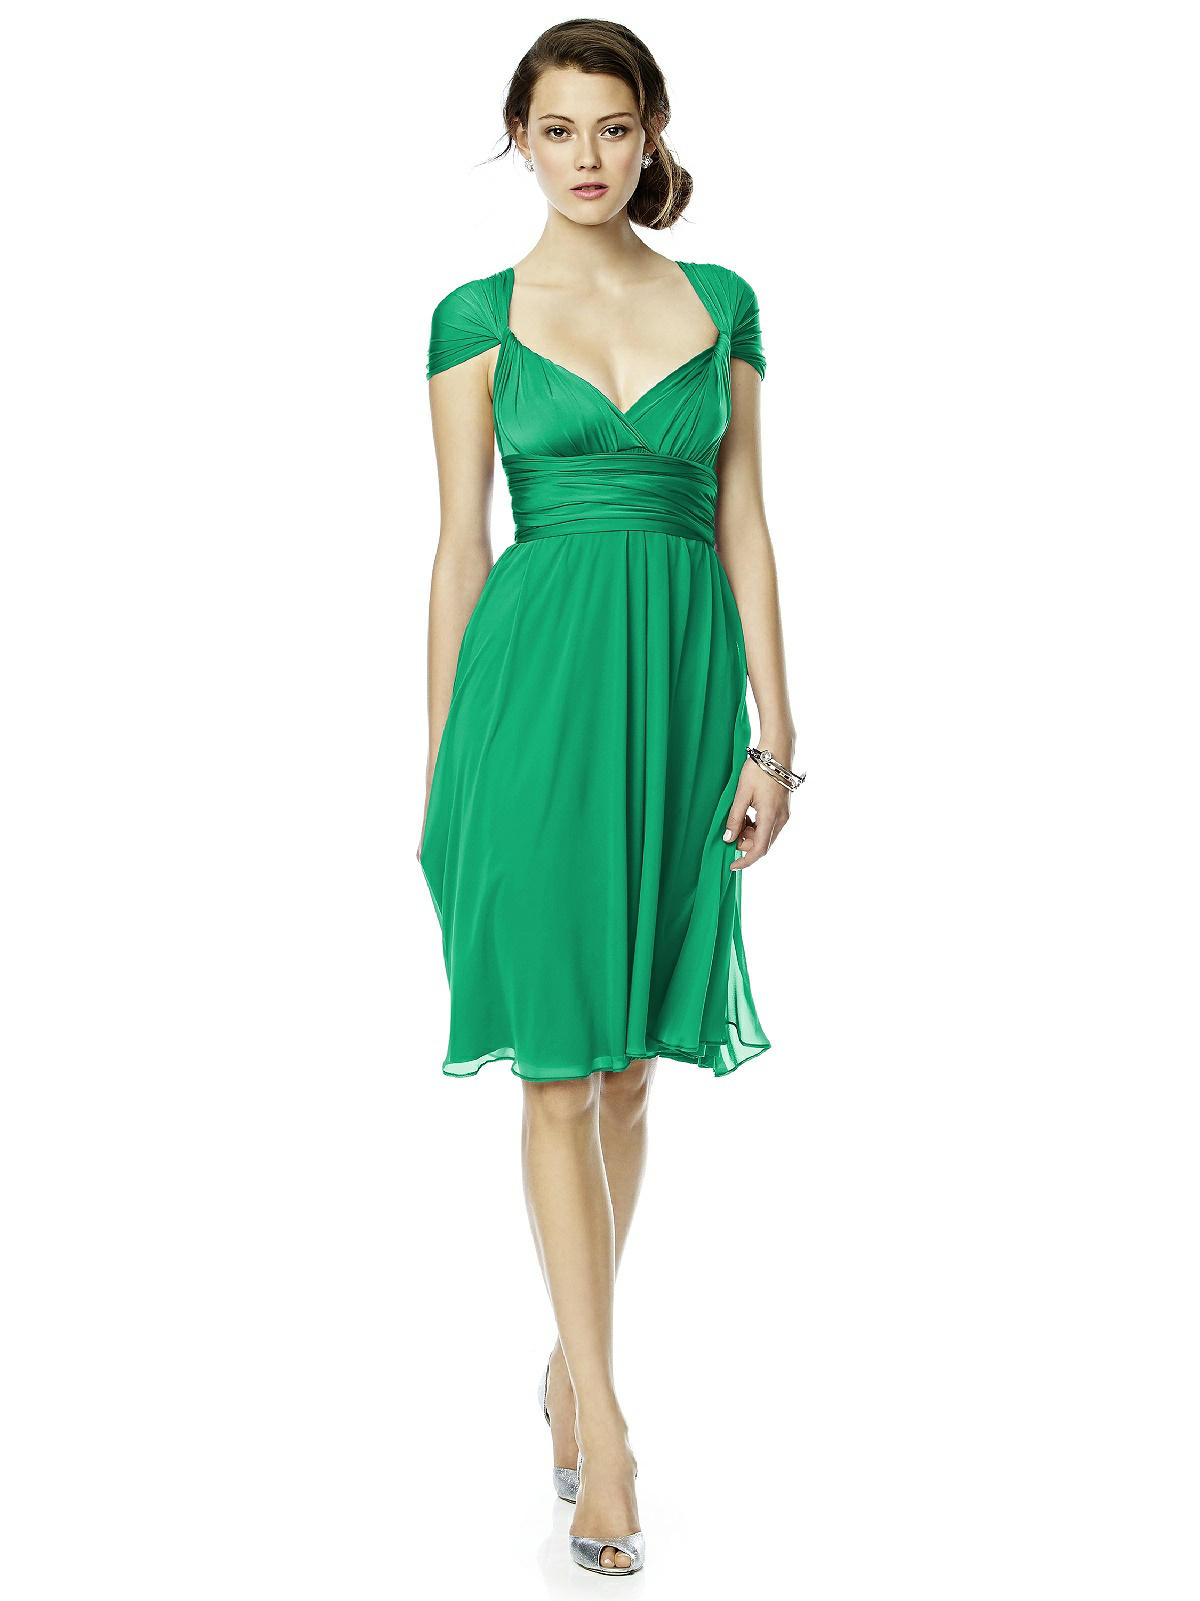 emerald green twist wrap dress by Dessy